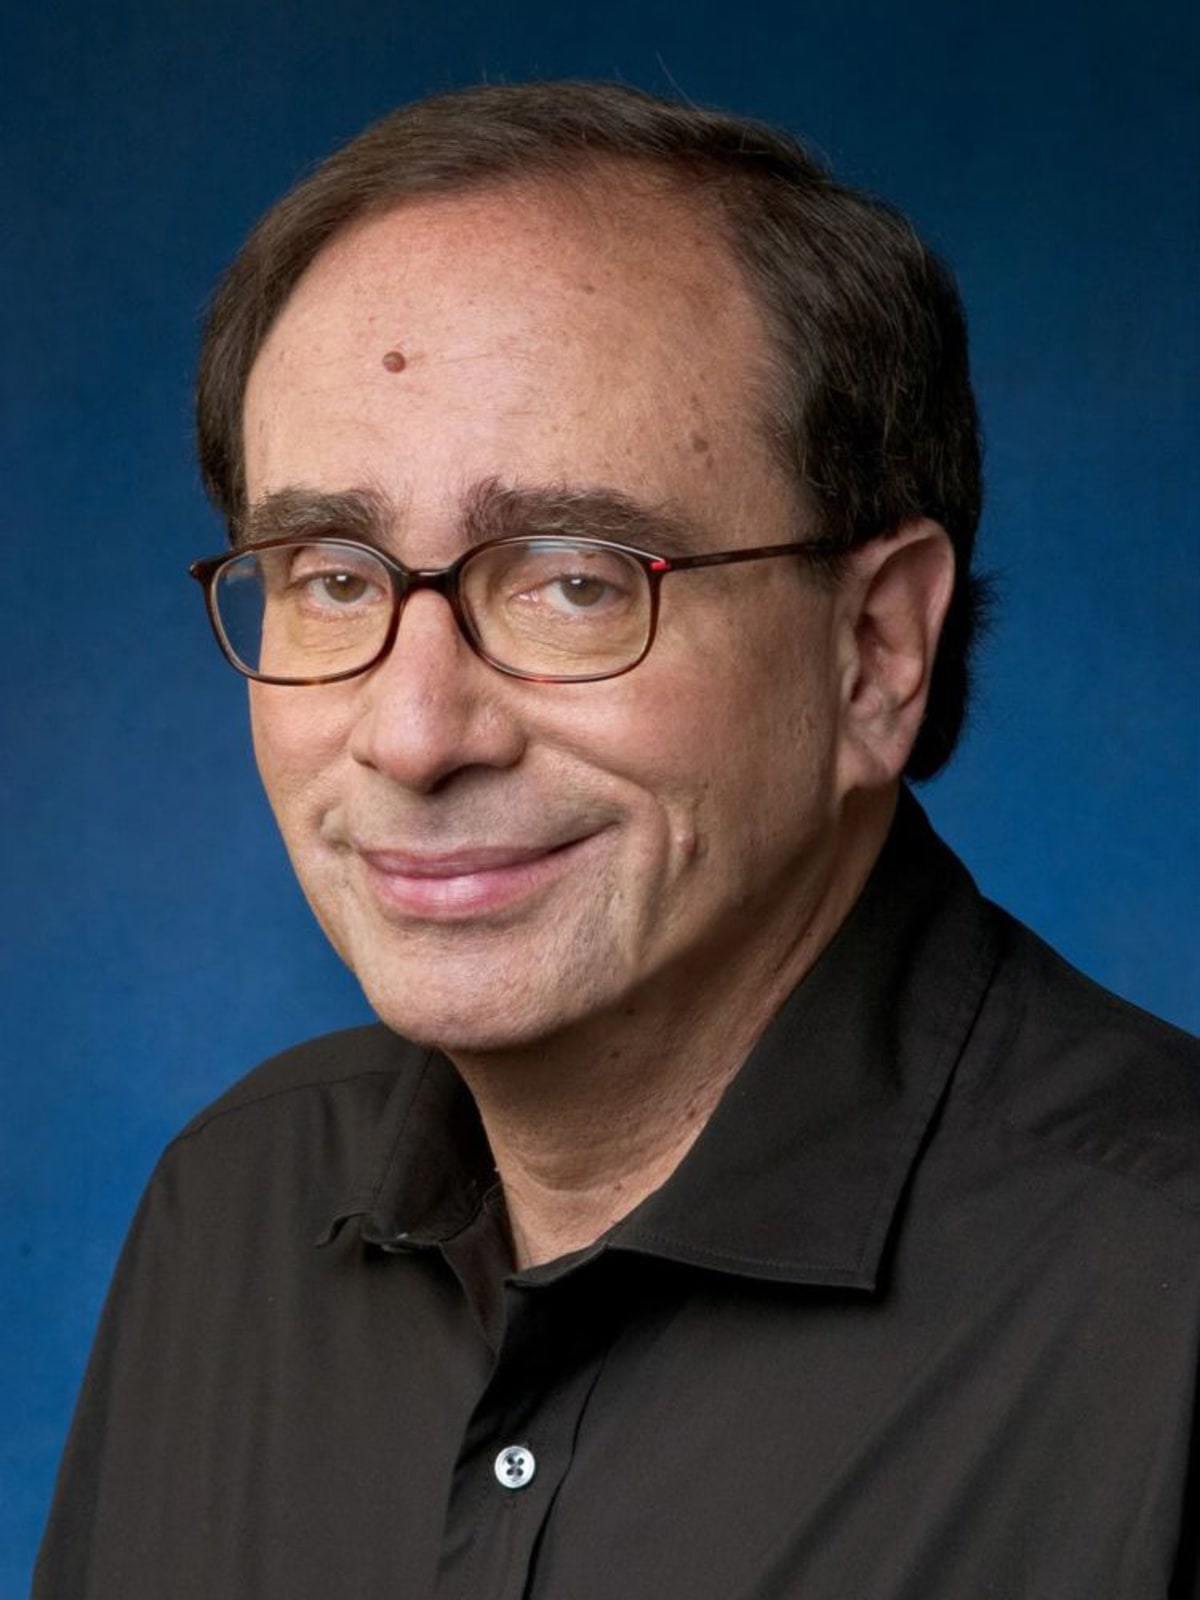 Goosebumps author R.L. Stine